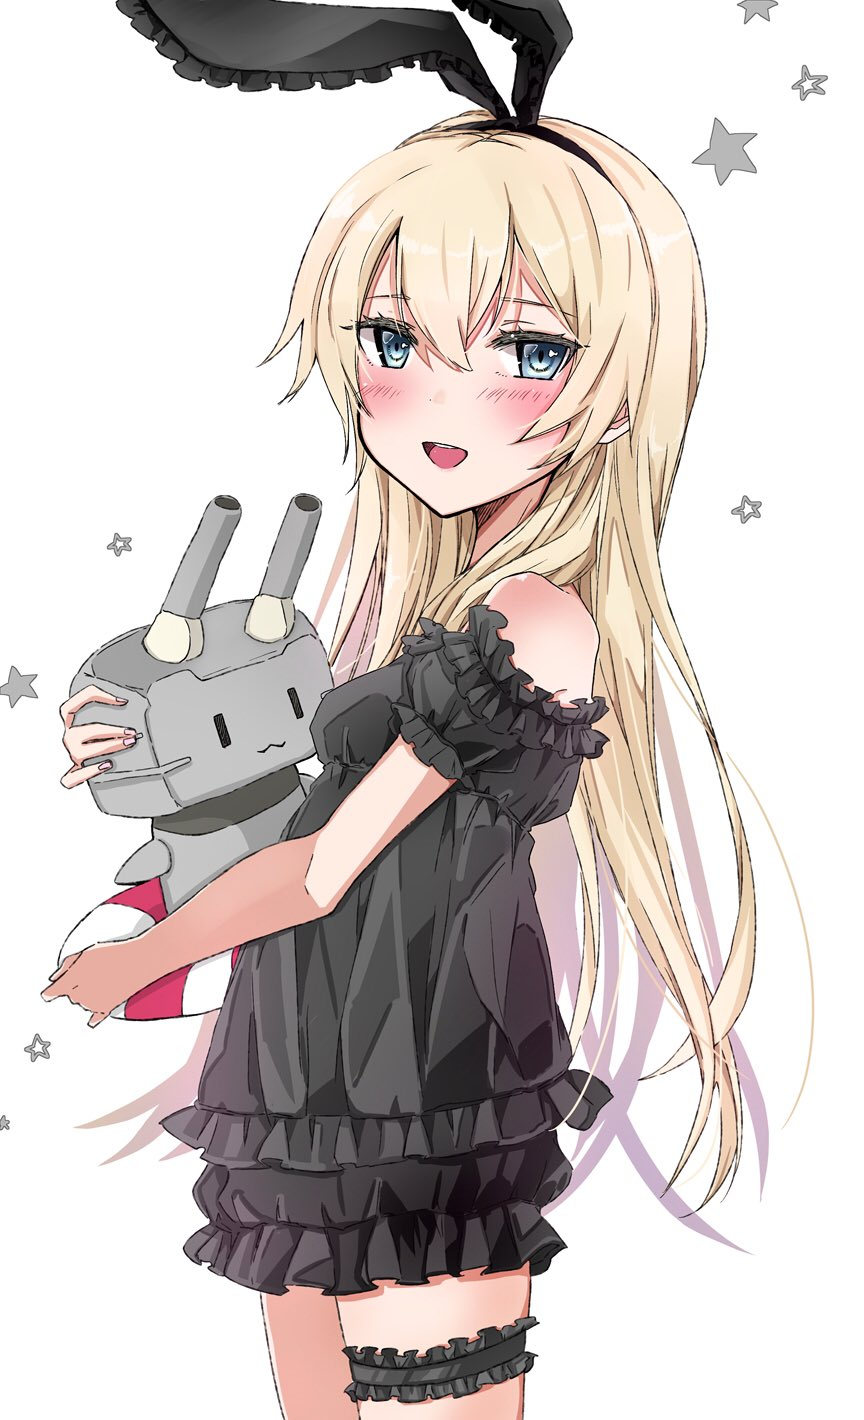 1girl 1other alternate_costume black_dress blonde_hair carrying casual chigasaki_y commentary_request cowboy_shot dress frilled_dress frills grey_eyes highres hug kantai_collection long_hair looking_at_viewer open_mouth rensouhou-chan shimakaze_(kantai_collection) simple_background smile standing white_background